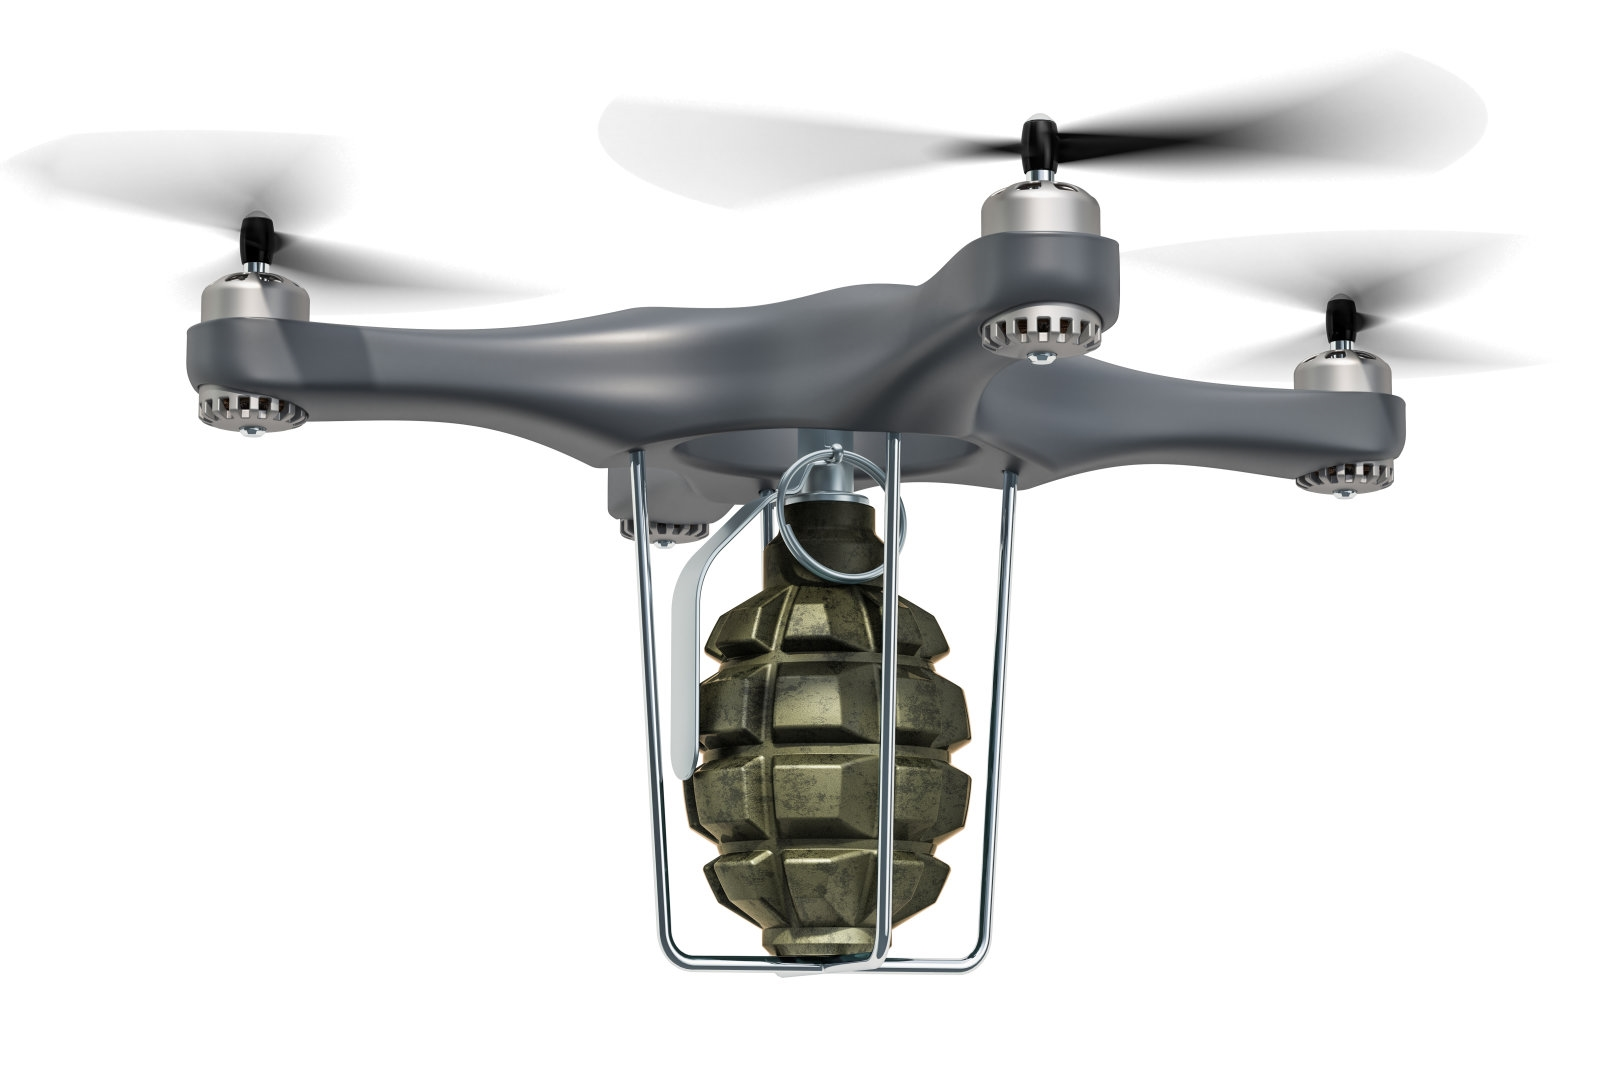 FAA: Please don't weaponize your drone | DeviceDaily.com